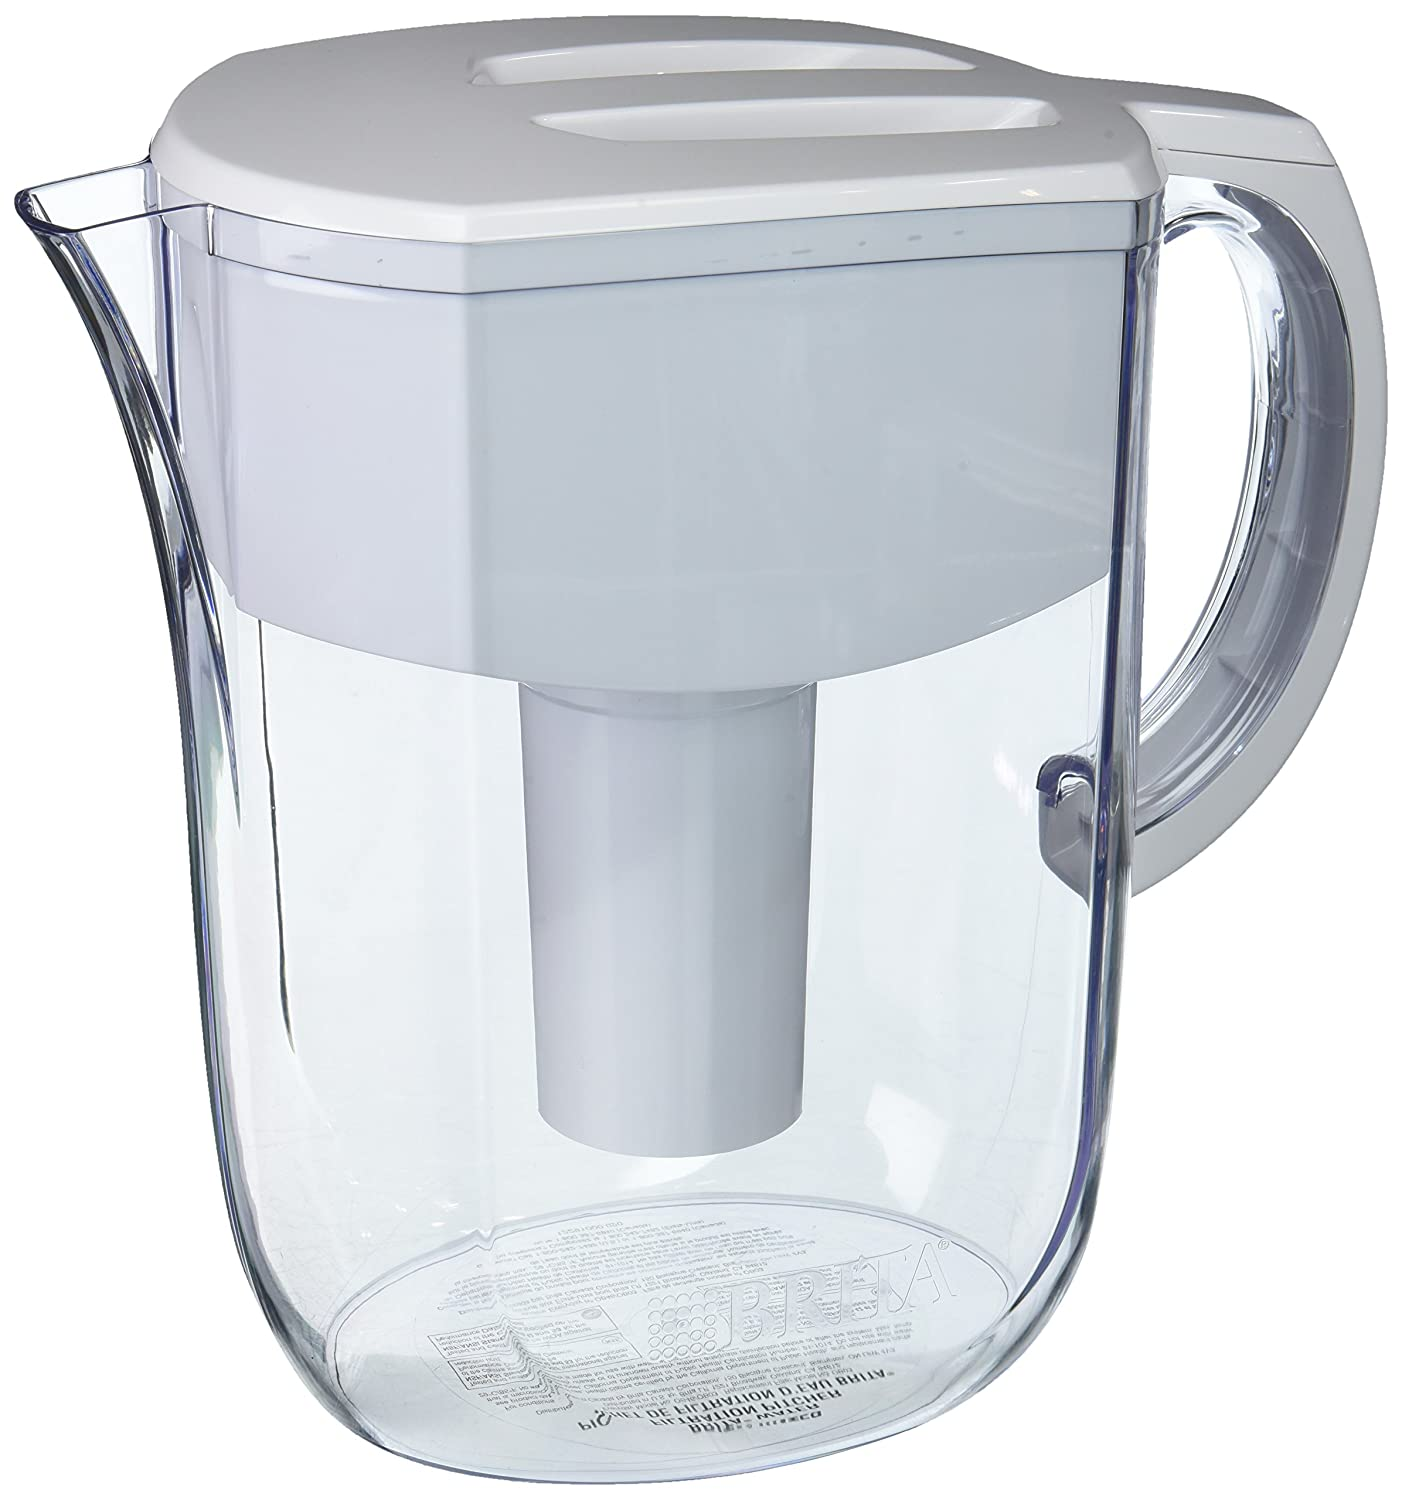 brita water pitcher cleaning instructions